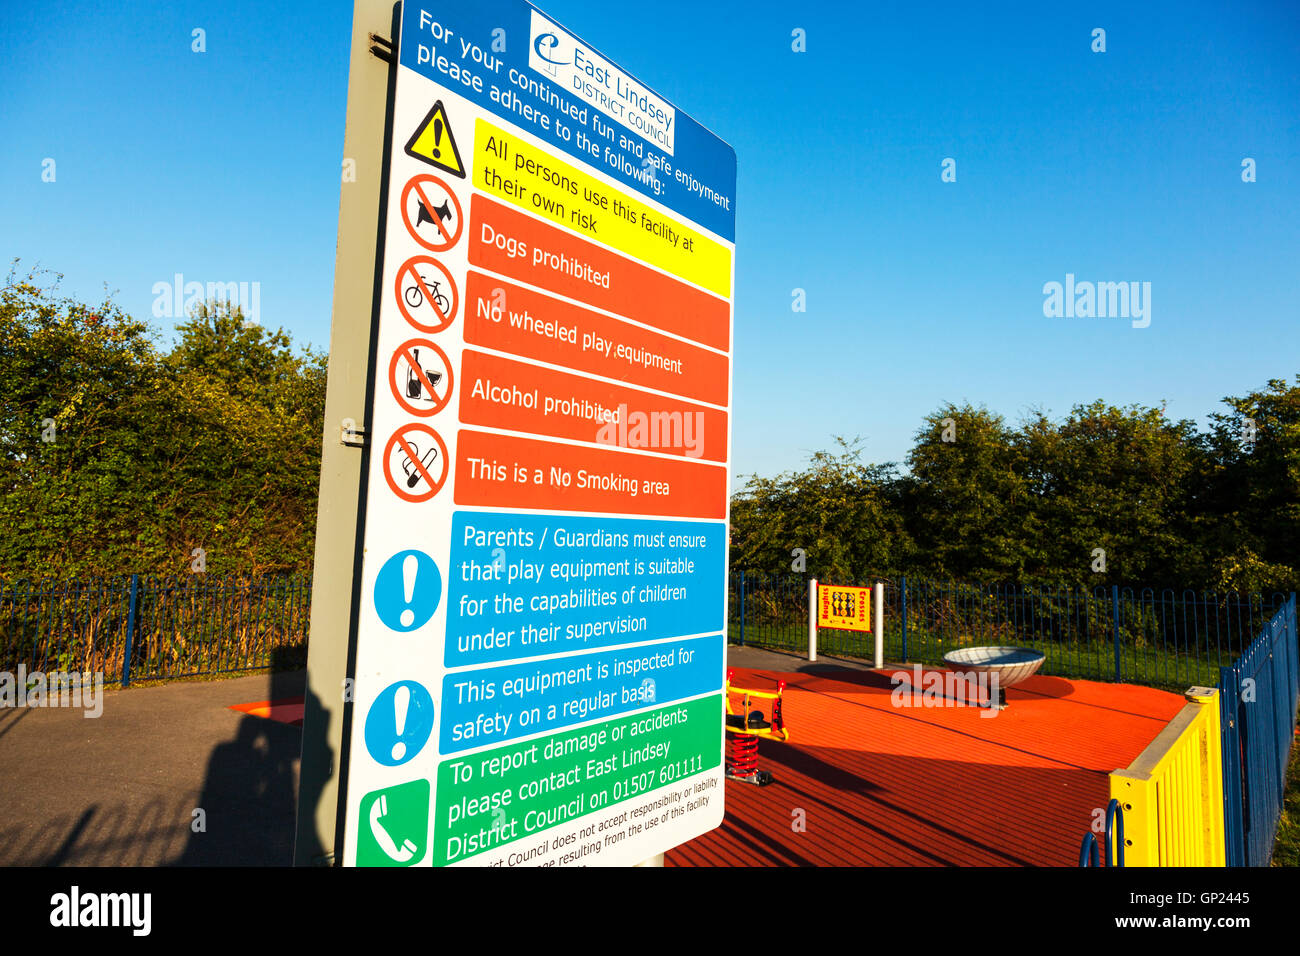 Park rules play parks warnings health and safety board sign signs restrictions UK England GB - Stock Image